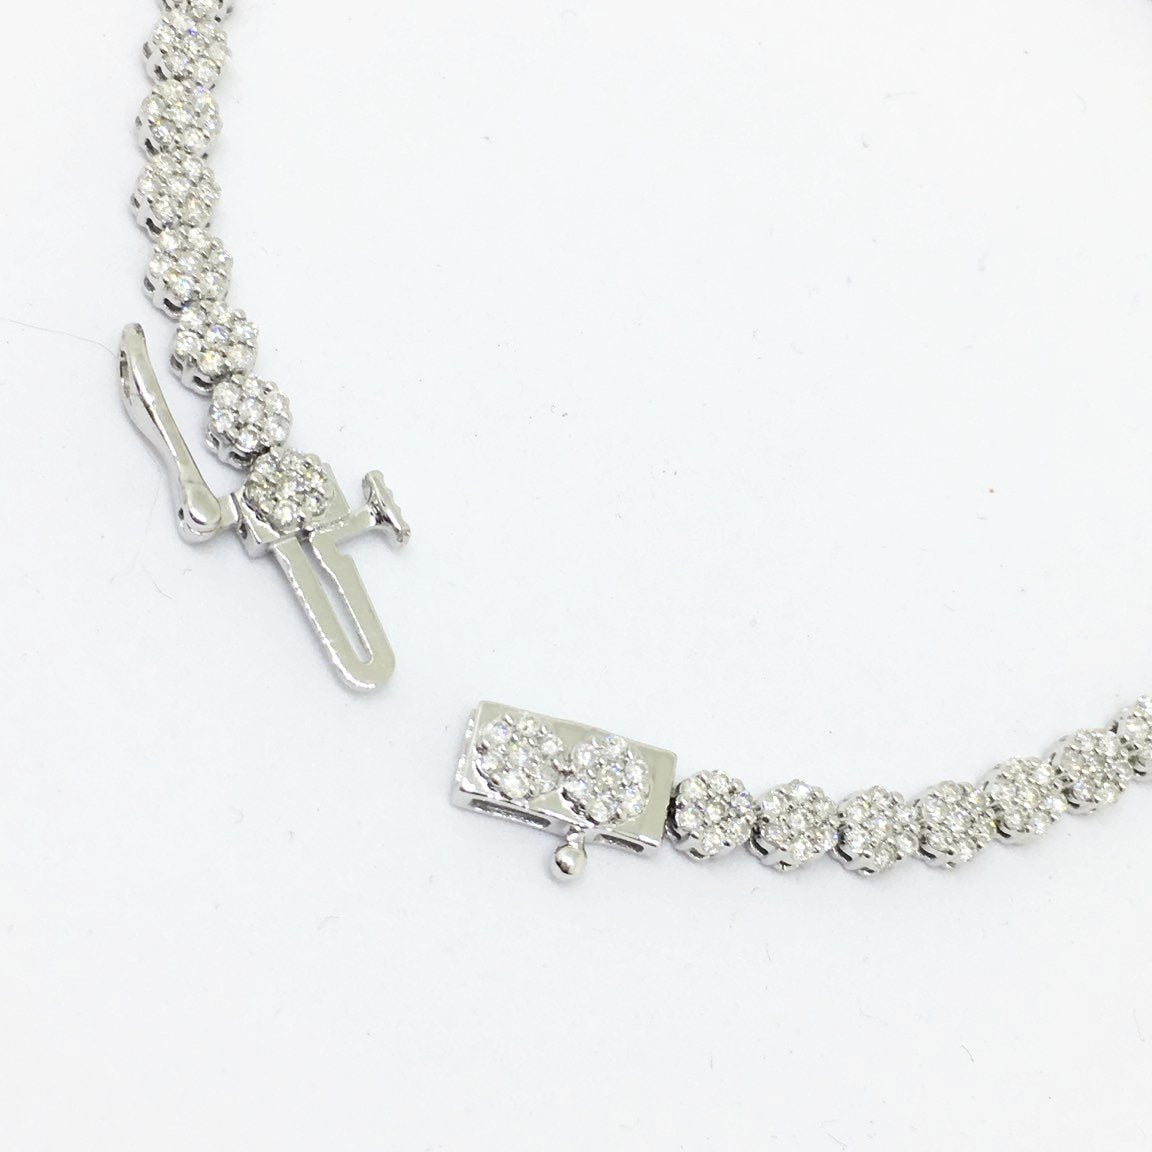 Genuine 2.0 cttw. Diamond & 14K white gold Tennis Bracelet 7 inches NWT $4995